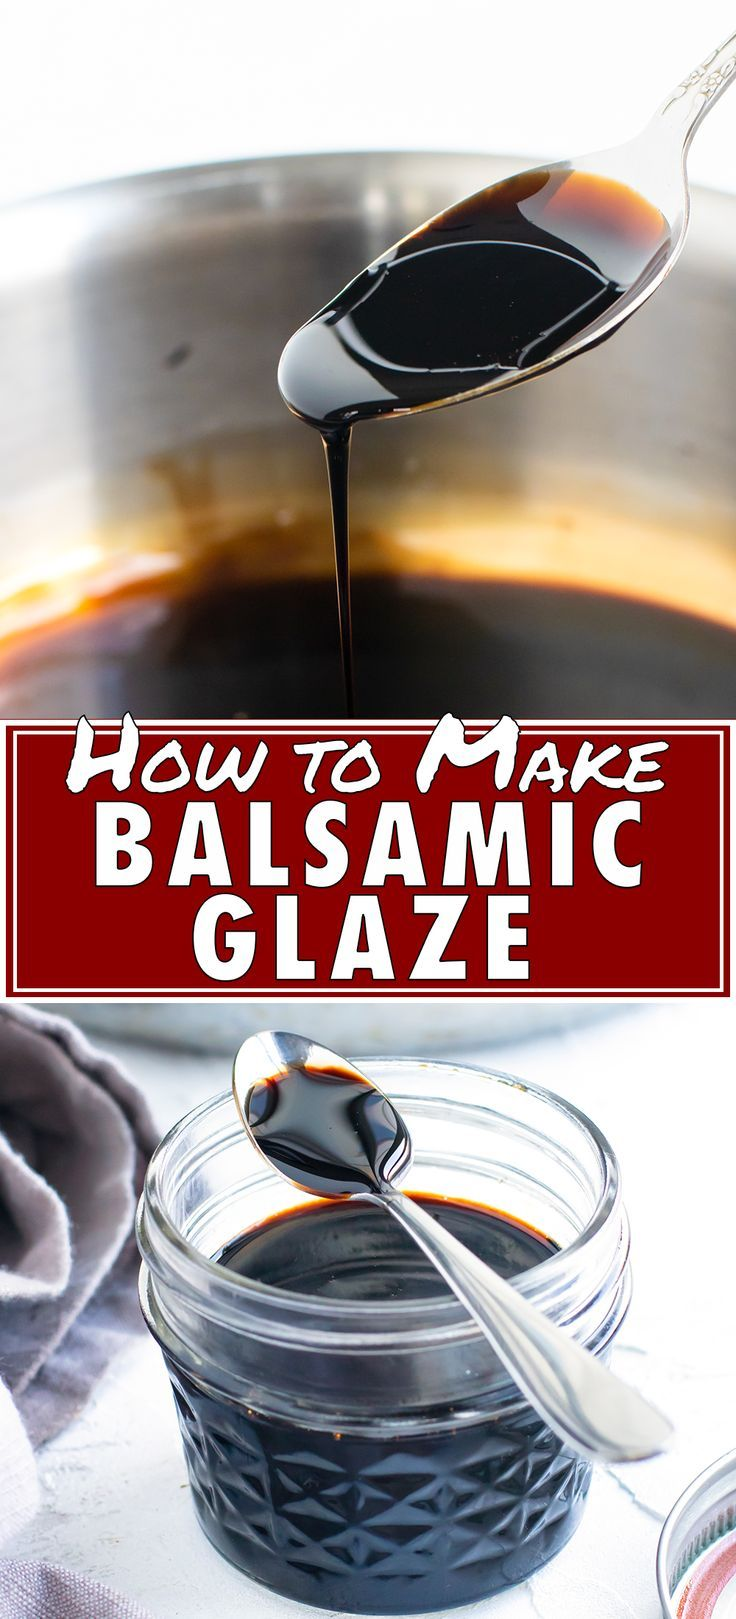 Balsamic Reduction Balsamic Glaze Recipe Balsamic Glaze Recipes Balsamic Glaze Balsamic